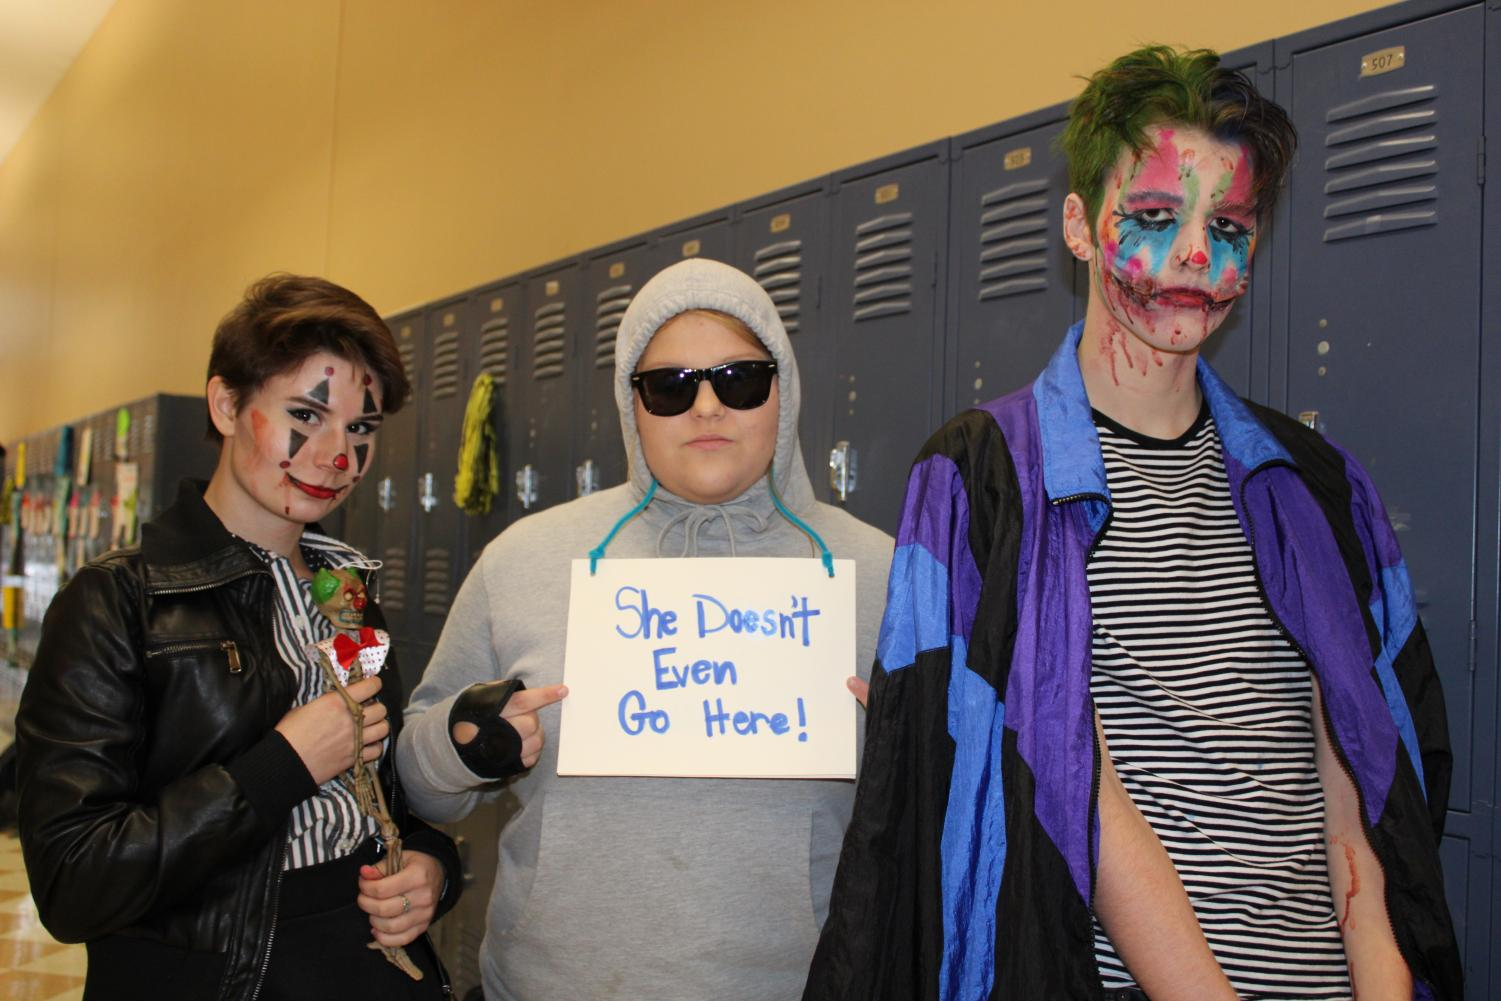 From left to right: Kim Kaiser, Mary Kathryn David, and Anderson Nixon dressed up on Halloween.